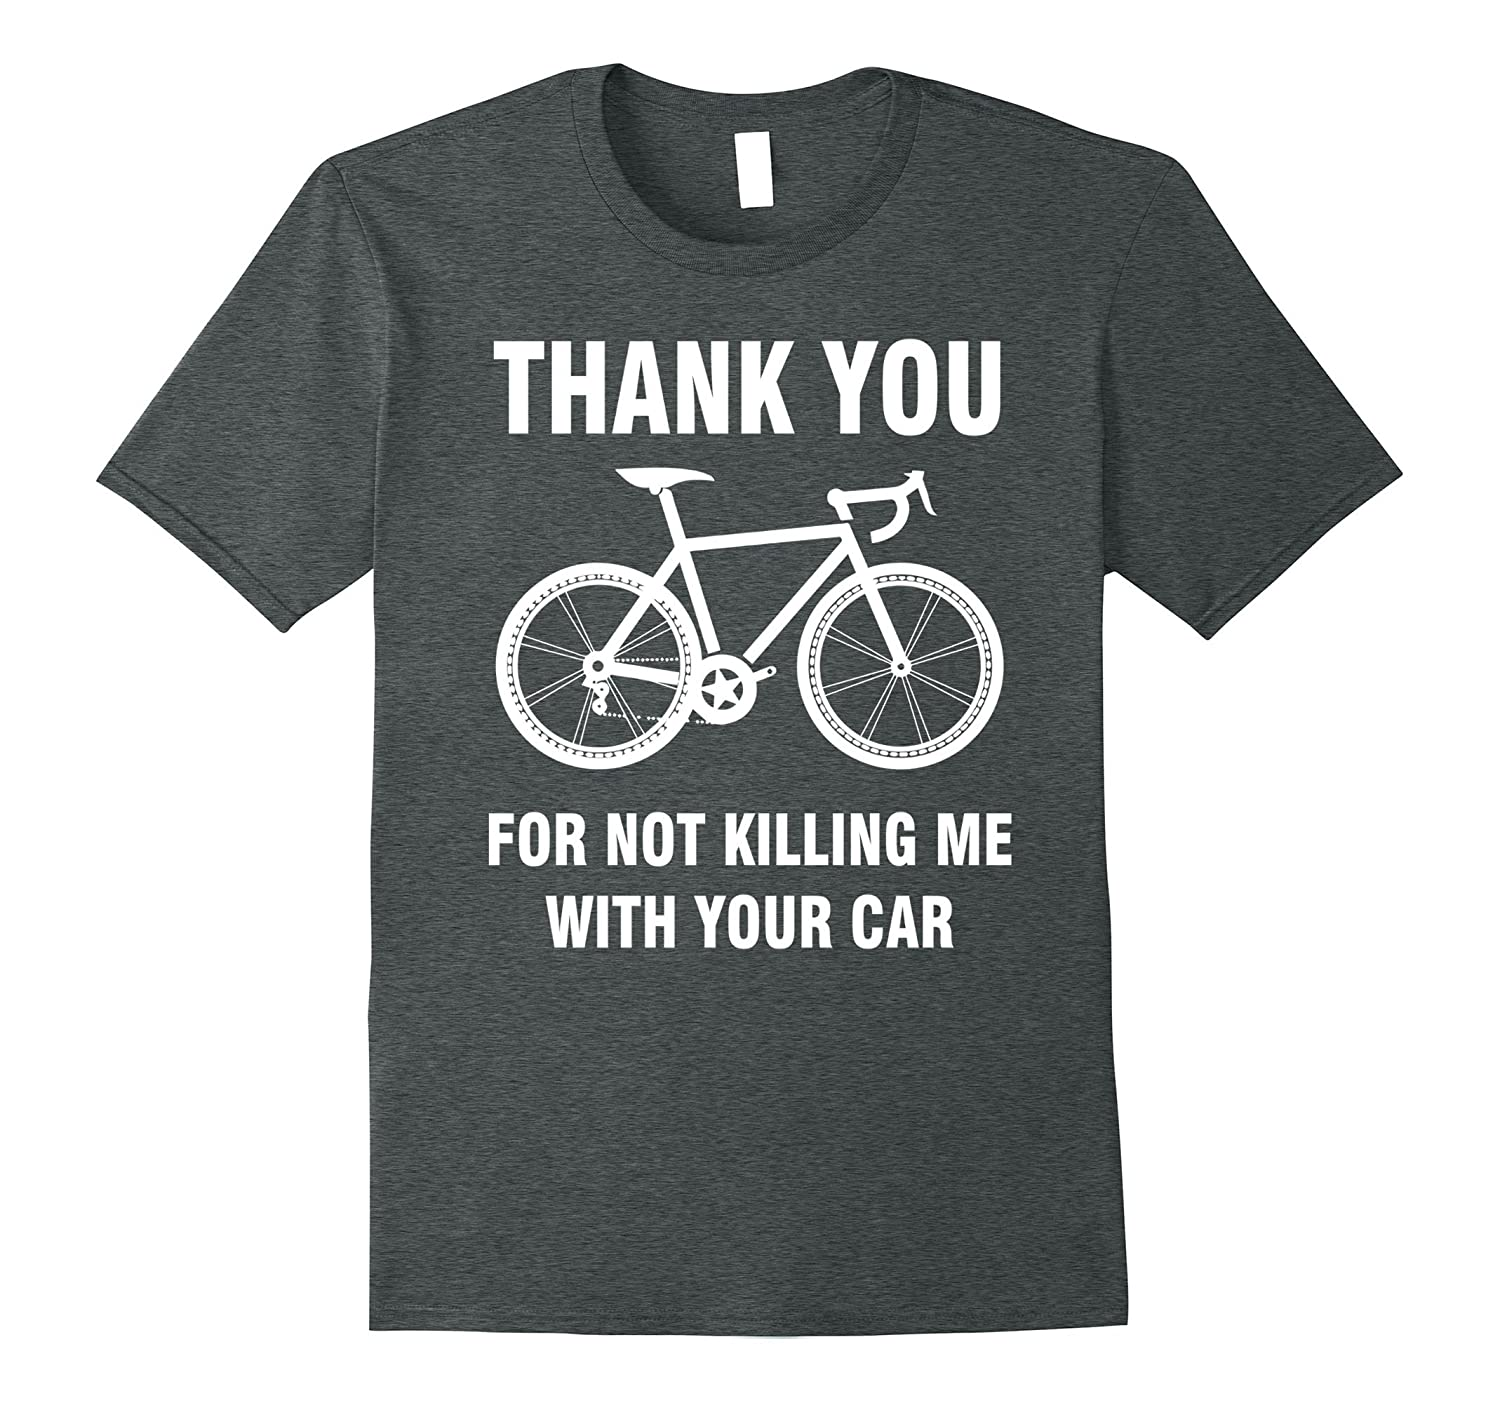 THANK YOU FOR NOT KILLING ME WITH YOUR CAR T SHIRT-4LVS